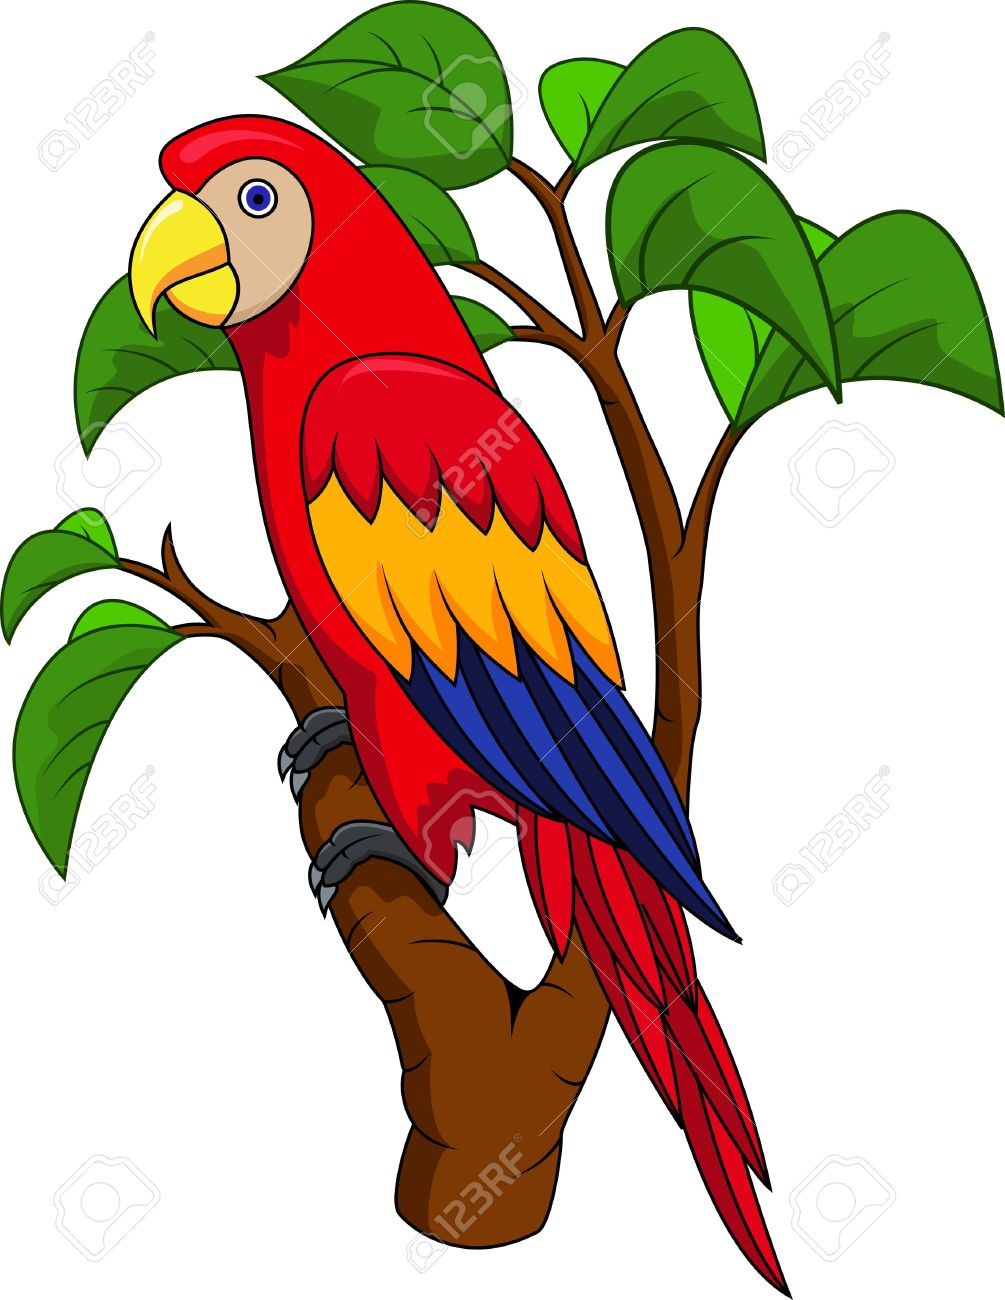 Jungle parrot clipart.